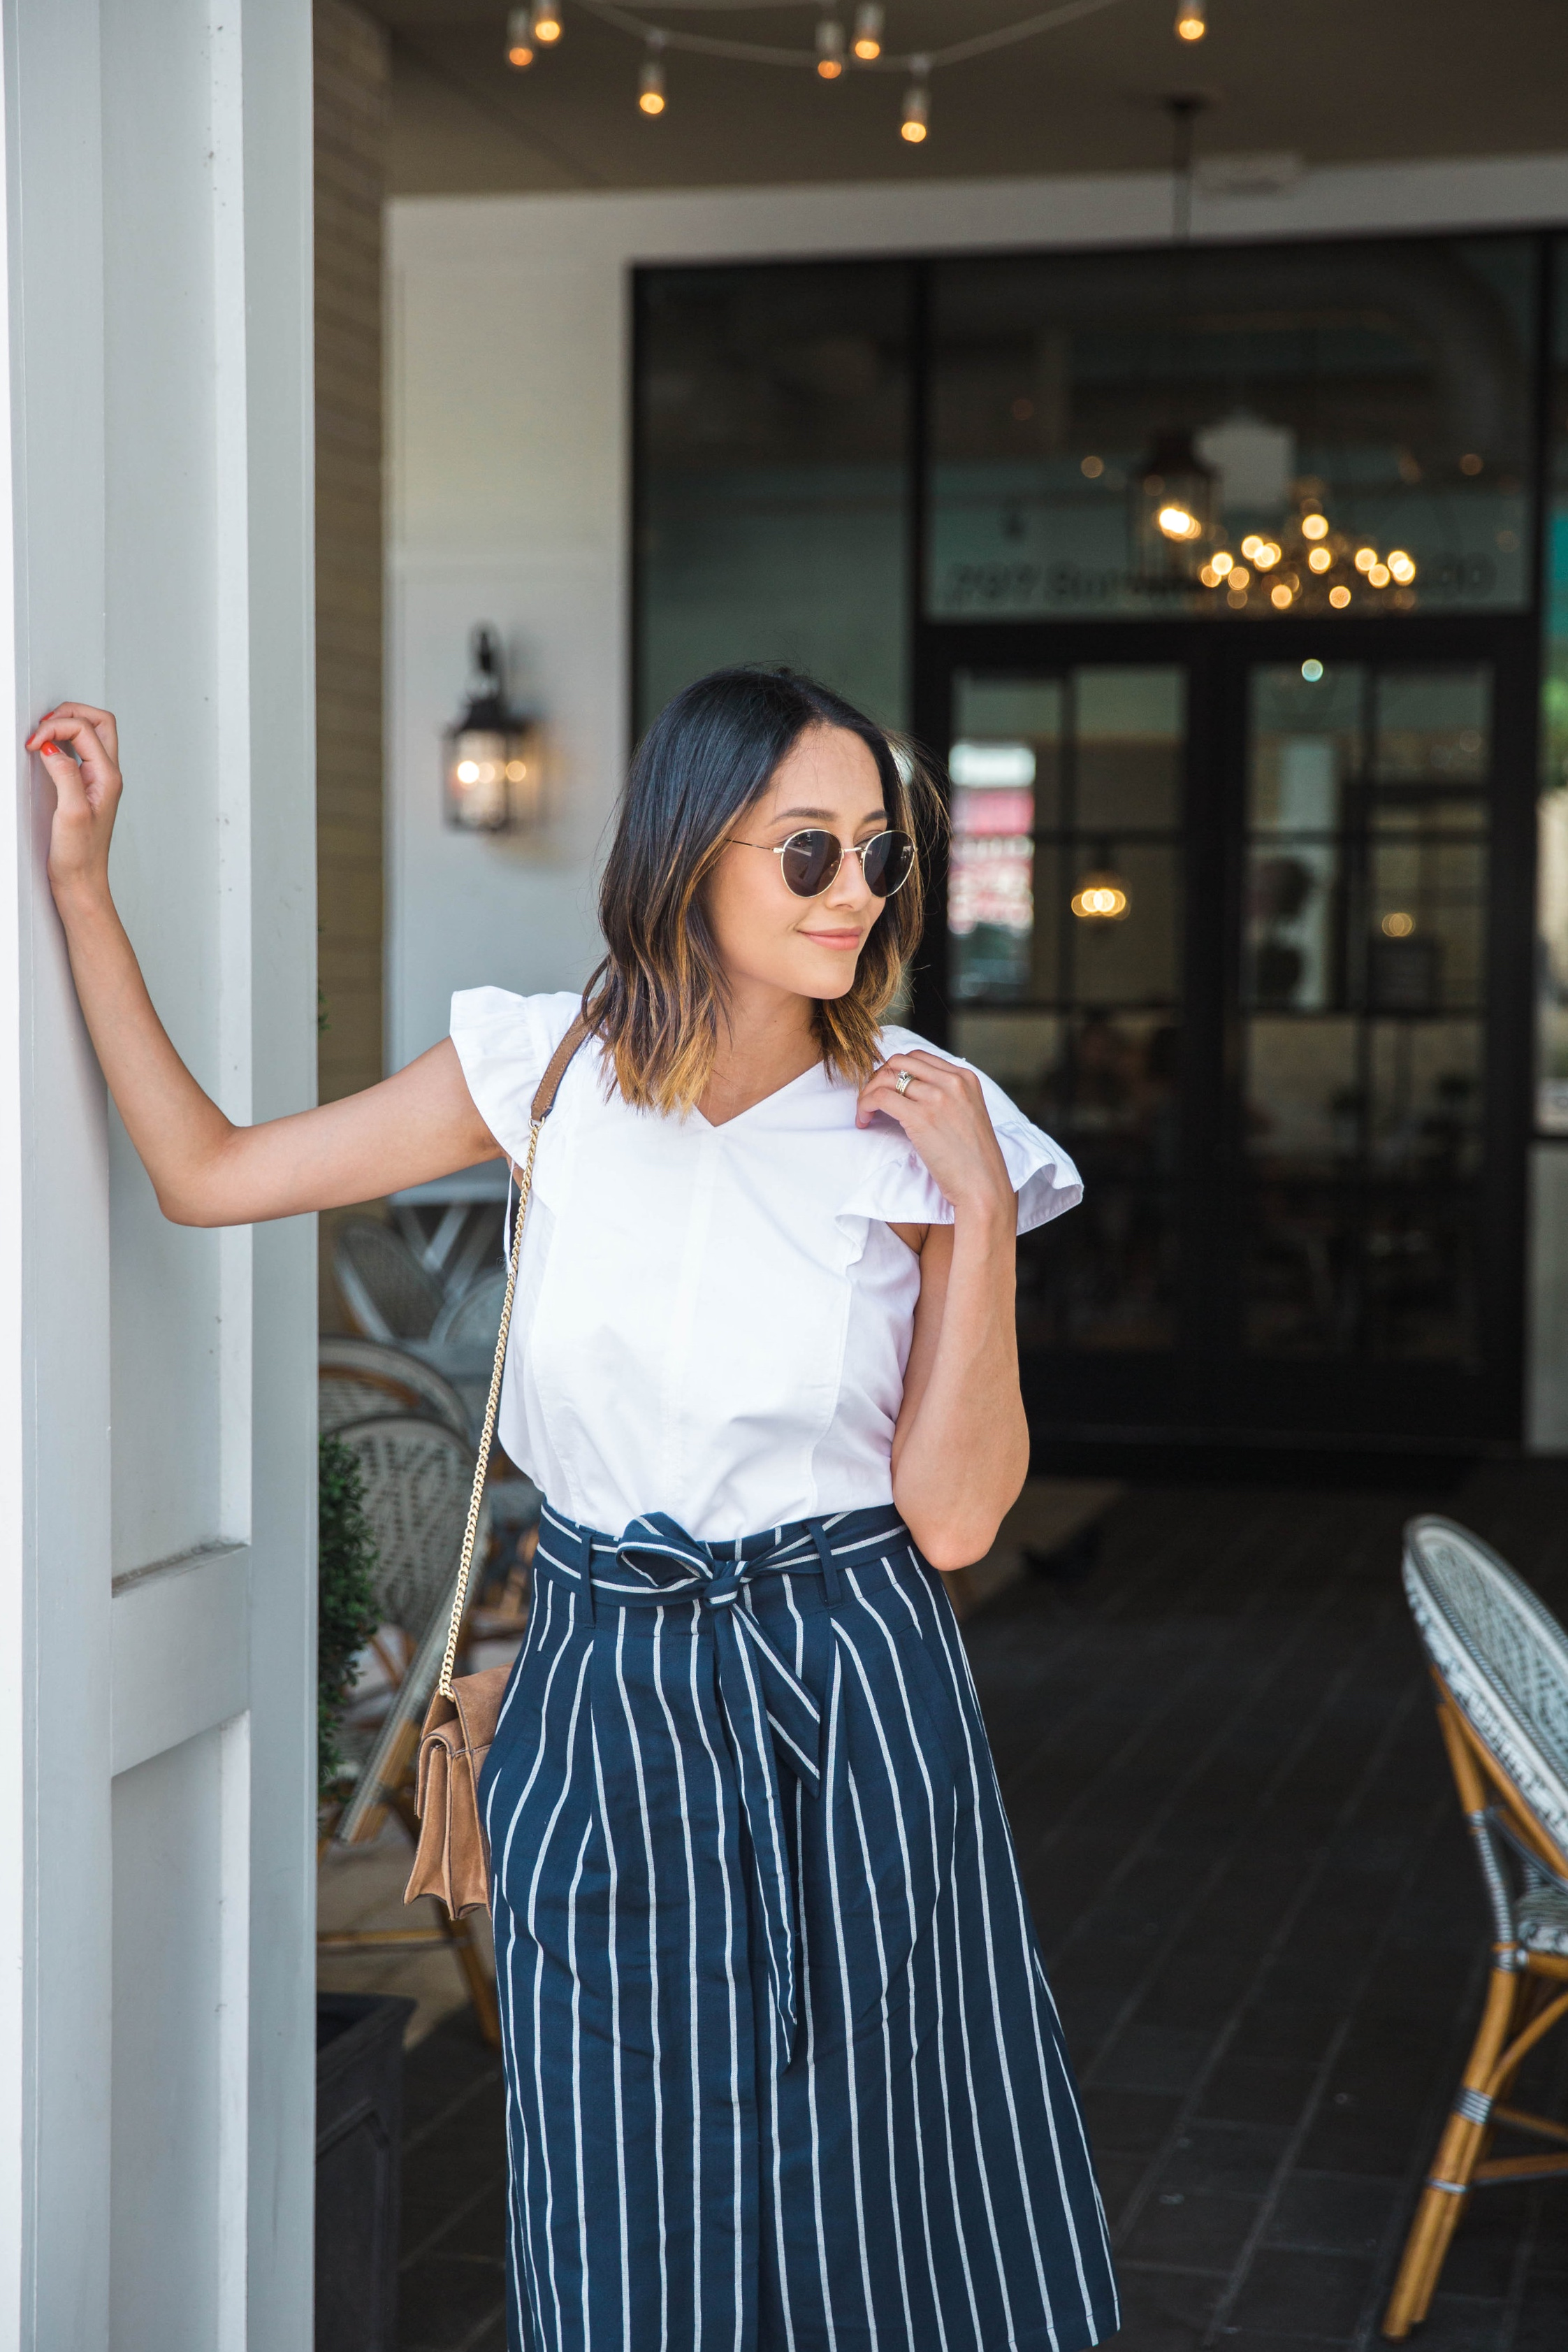 Ruffle Sleeves & Striped Skirt